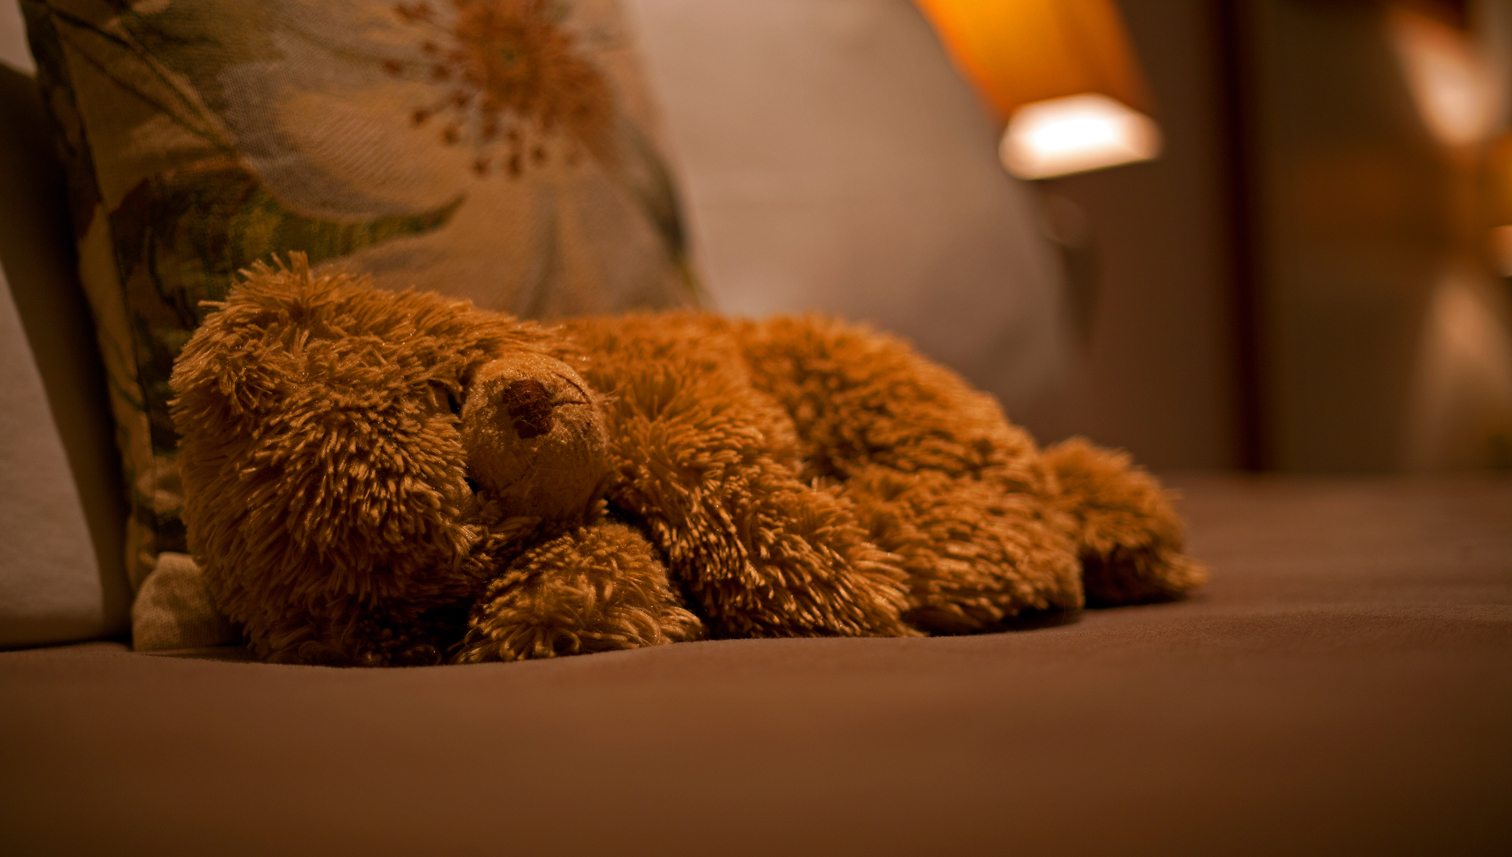 Sleeping Teddy Bear 1